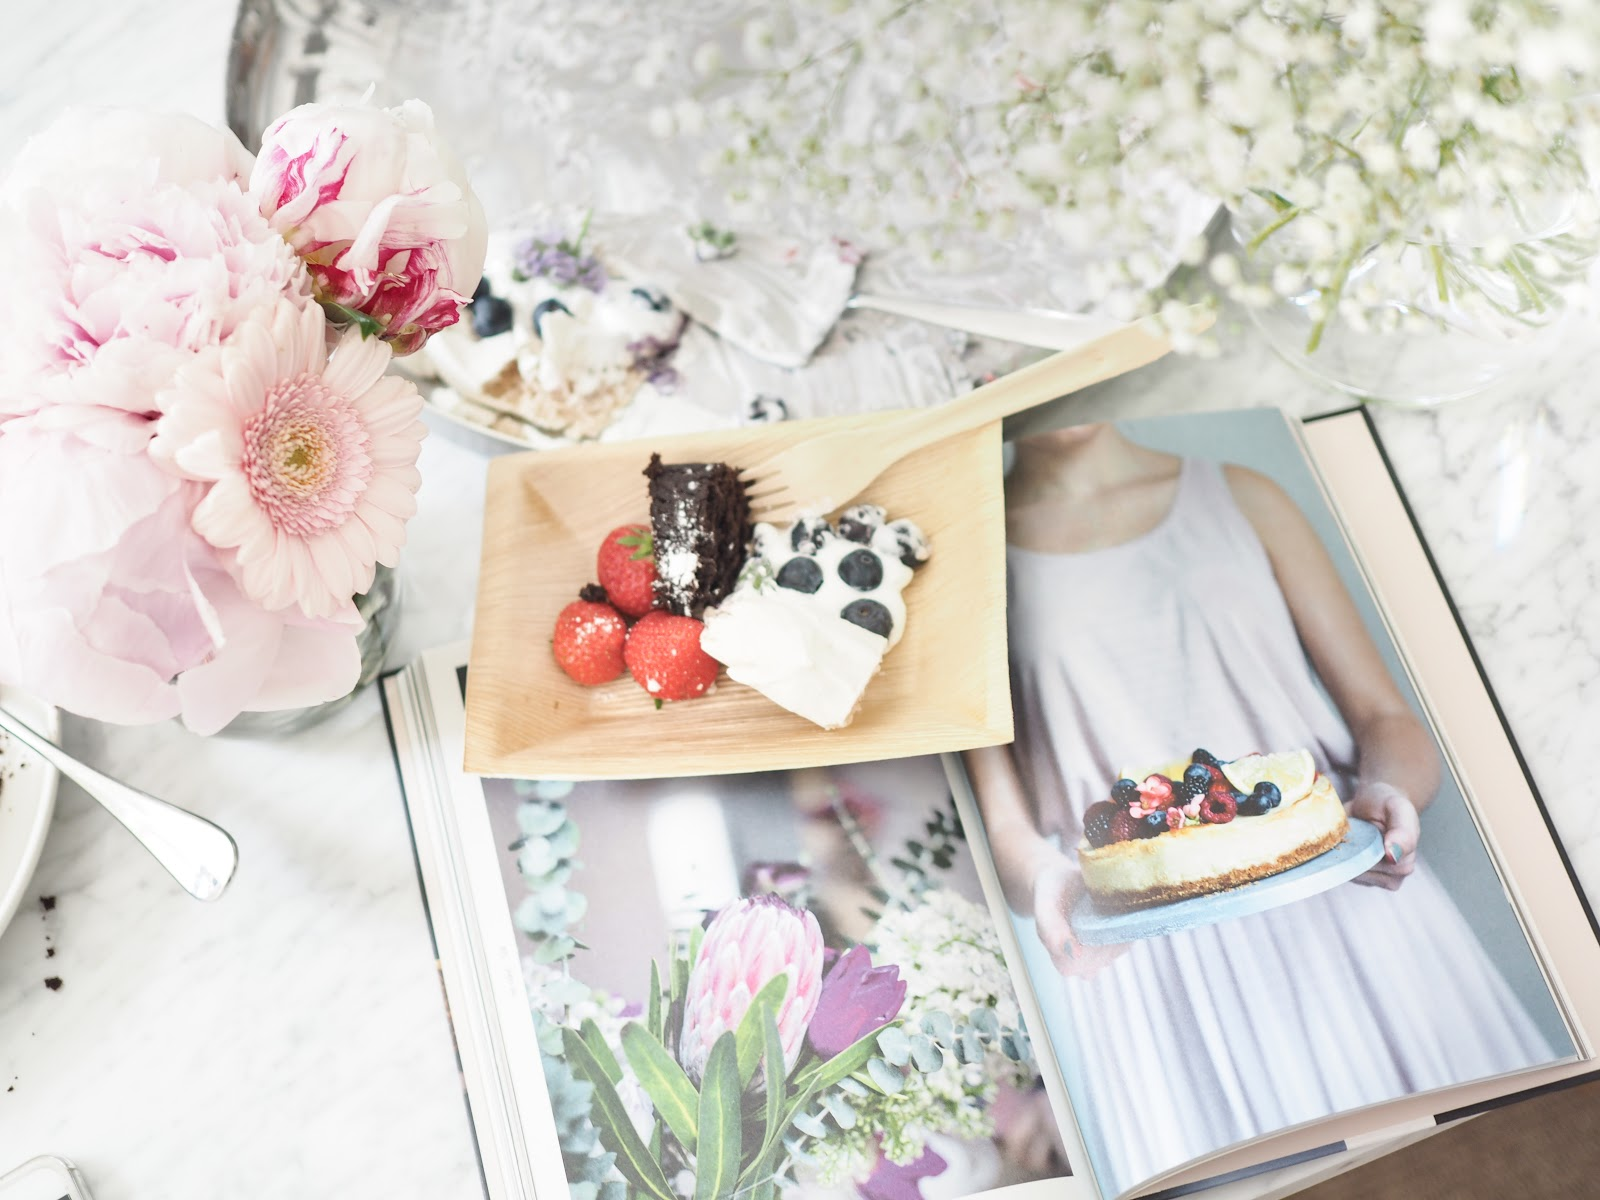 Eat cake! – Cake for Midsummer